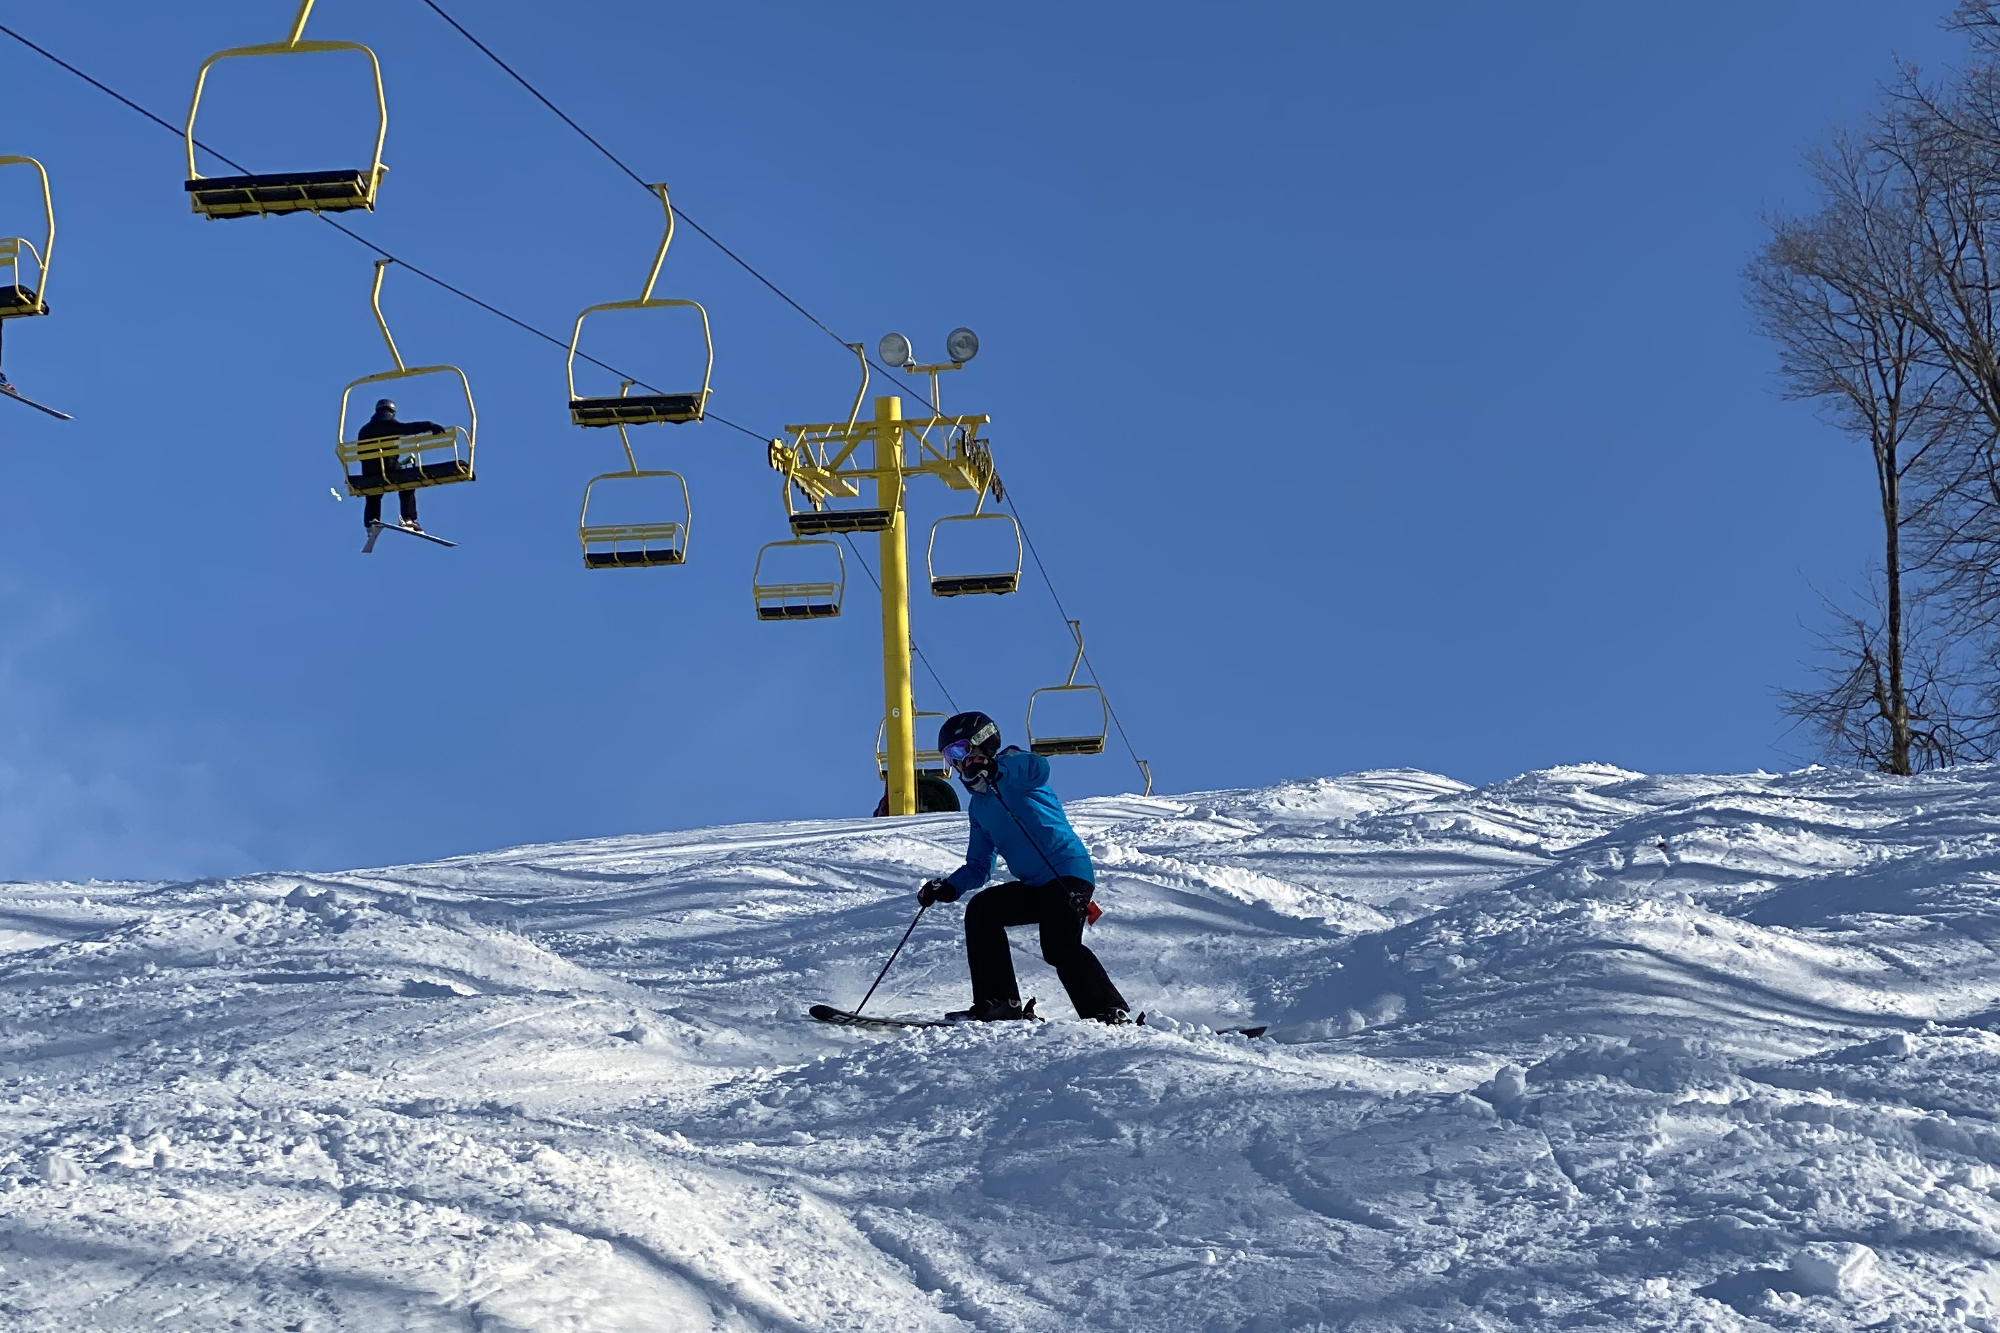 skiing moguls yellow chair